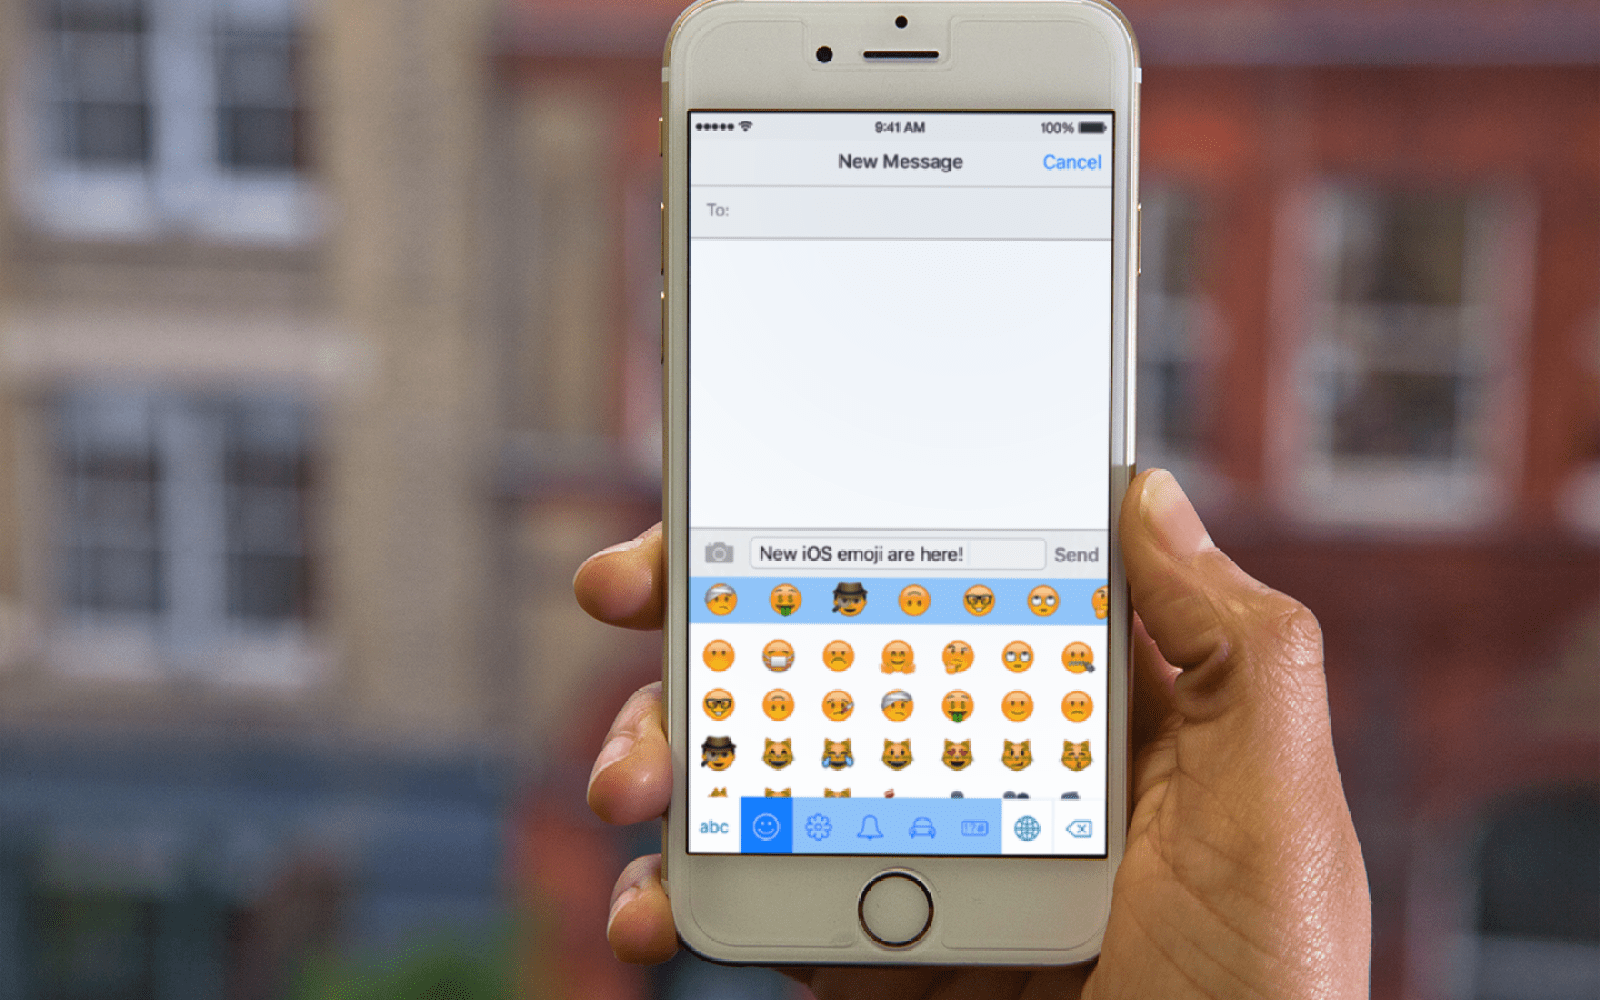 SwiftKey updated with complete set of new emoji for iOS 9 1